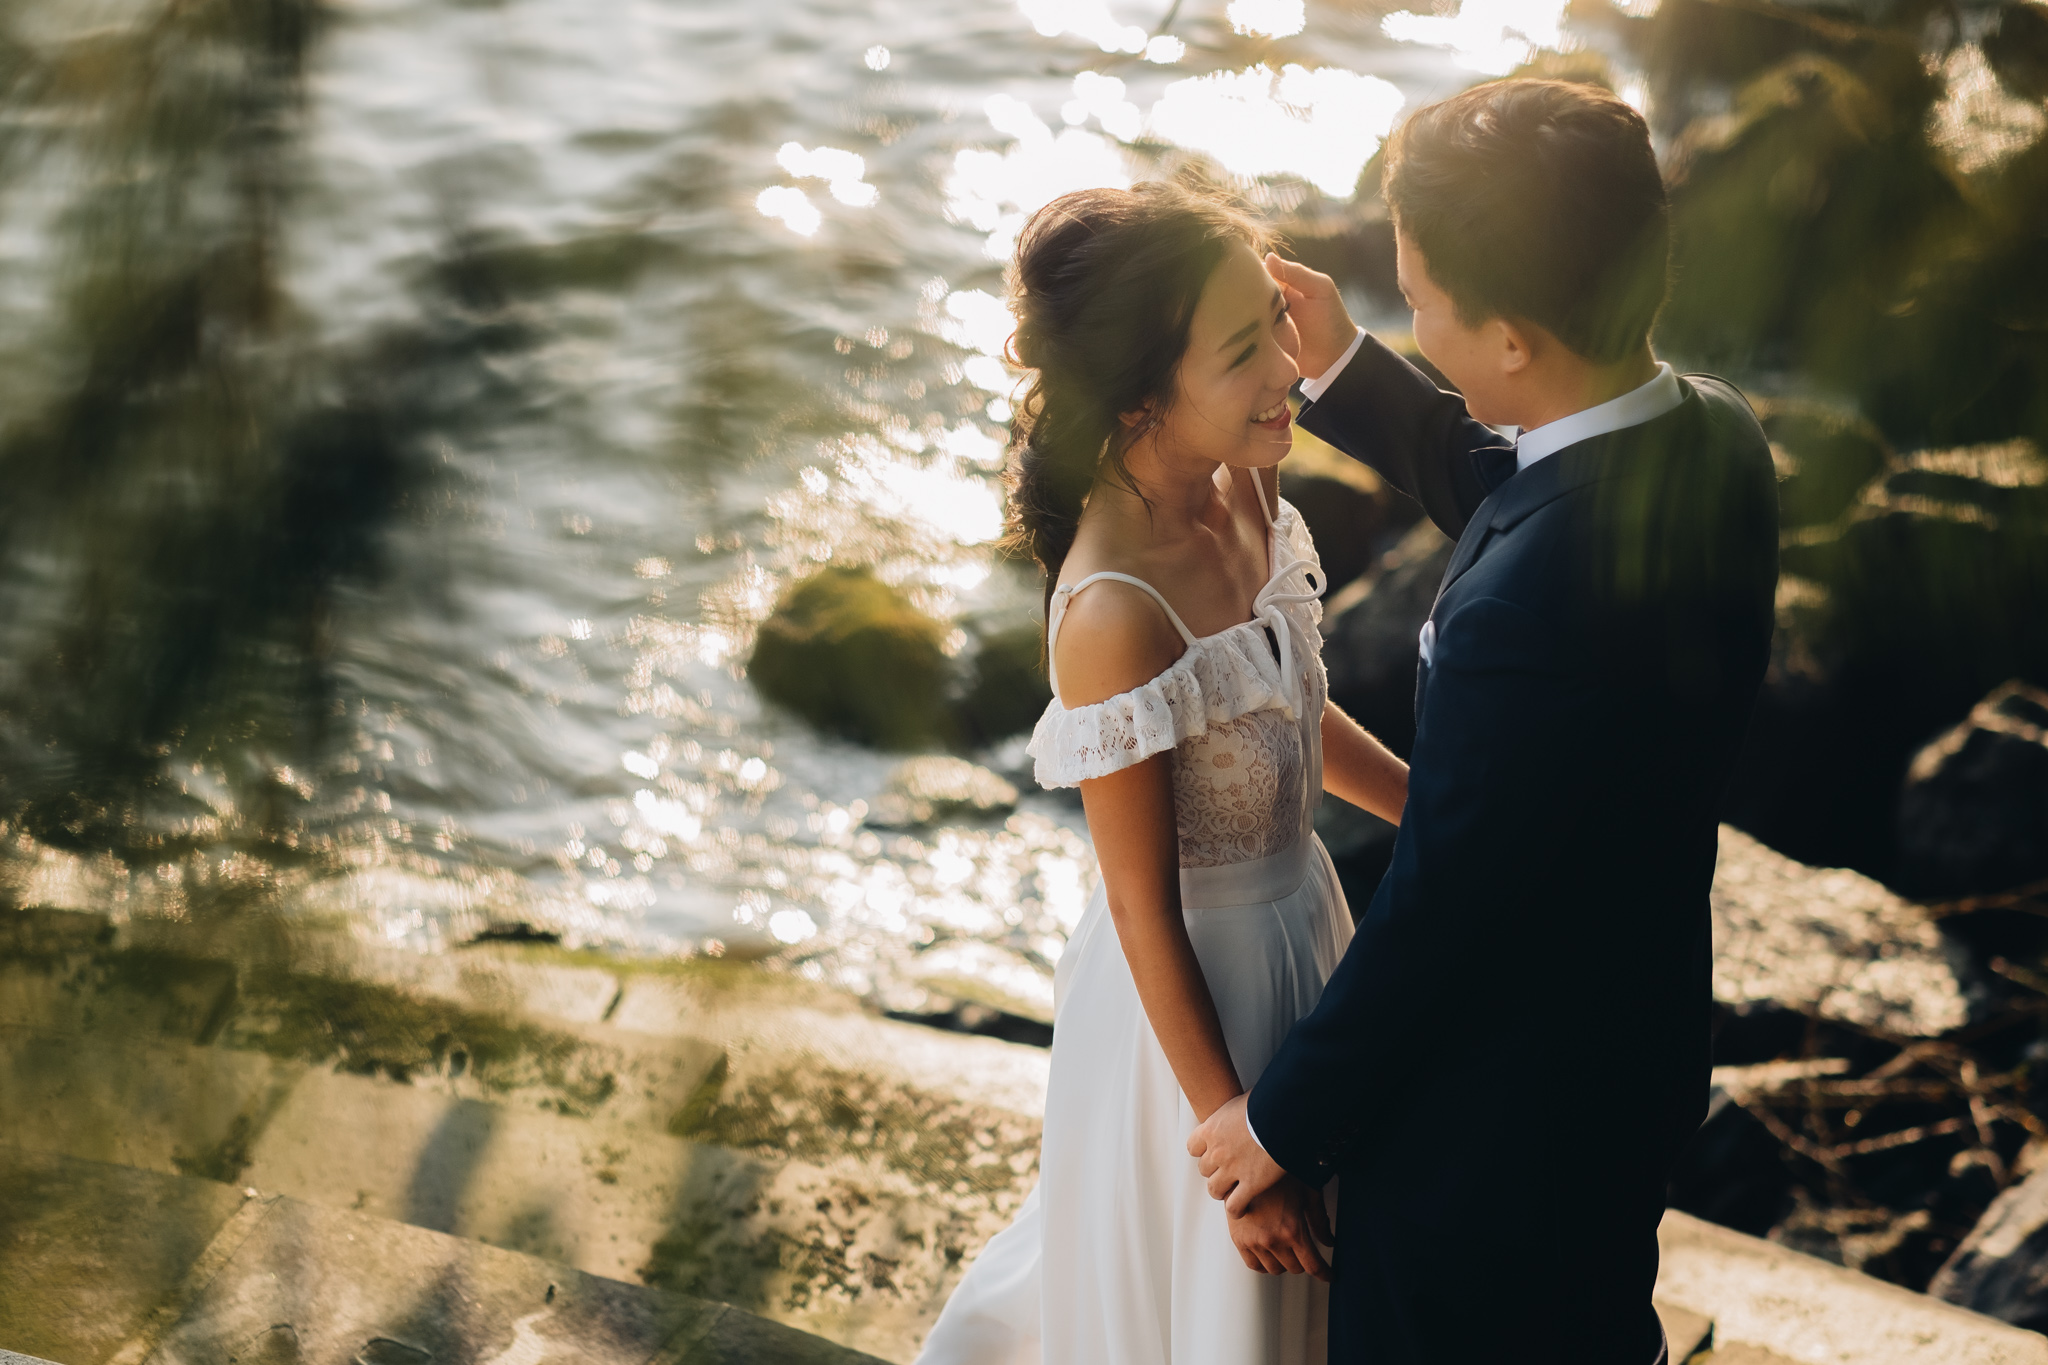 Sabrina & Willy Pre-Wed (resized for sharing) - 033.jpg